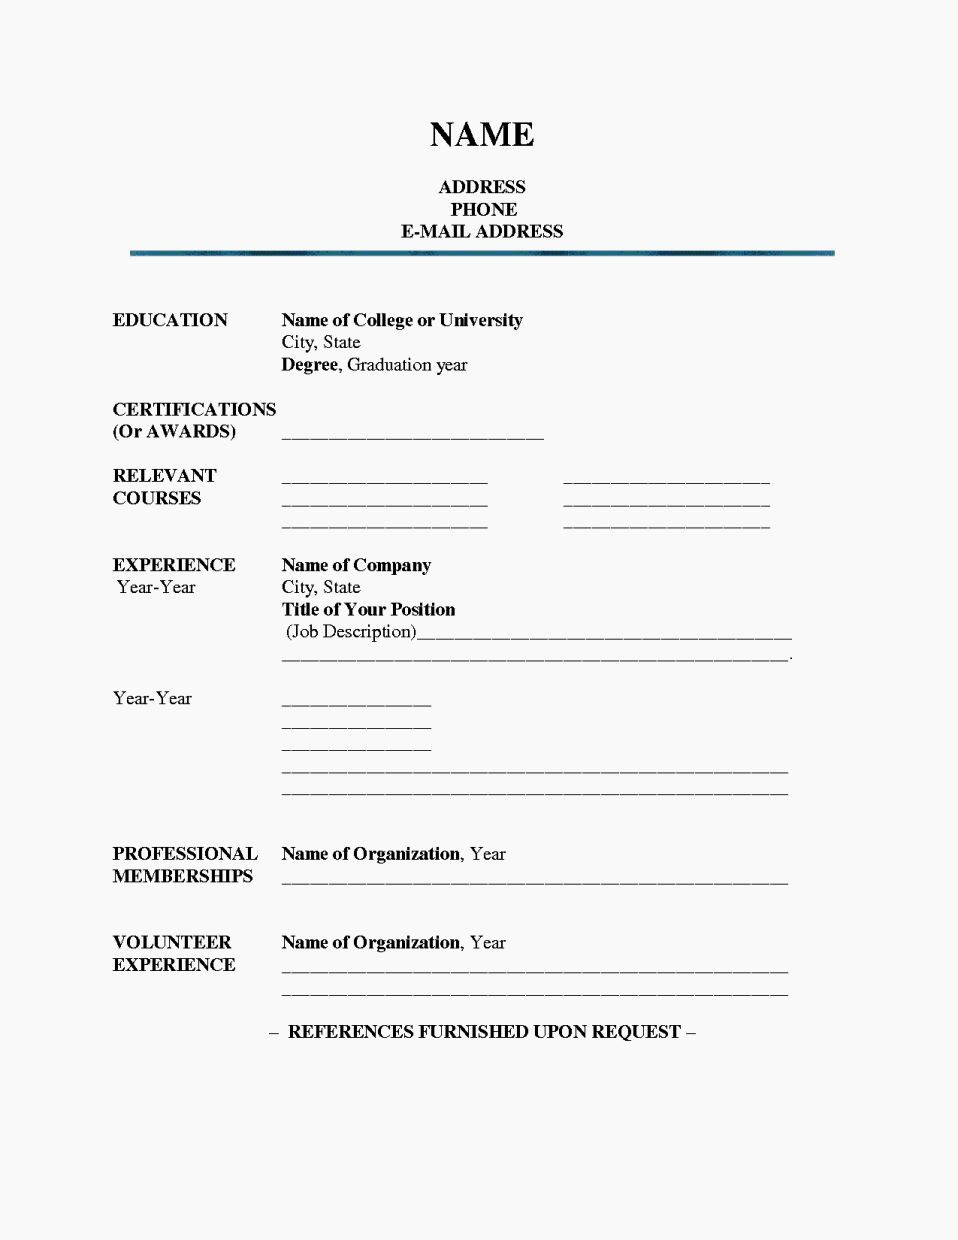 Resume forms to Fill Out Beautiful Fill In Blank Printable Resume Resume Template